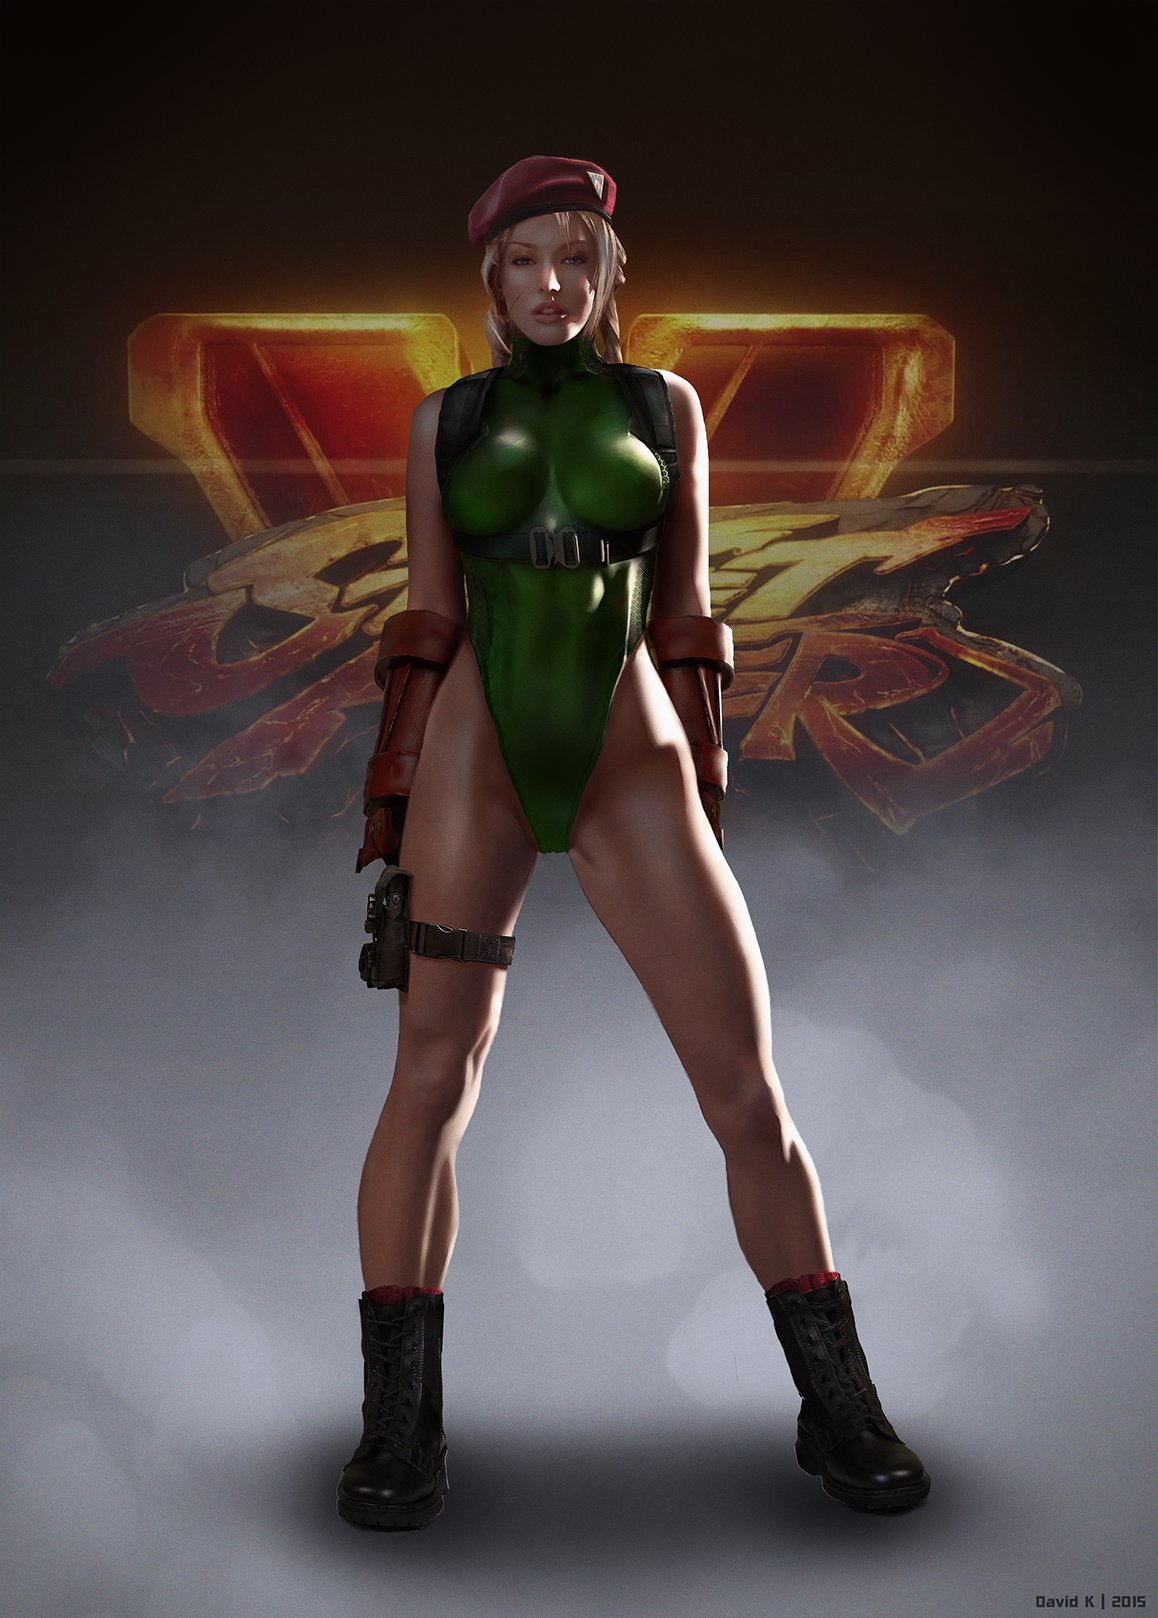 David kaye cammy low res